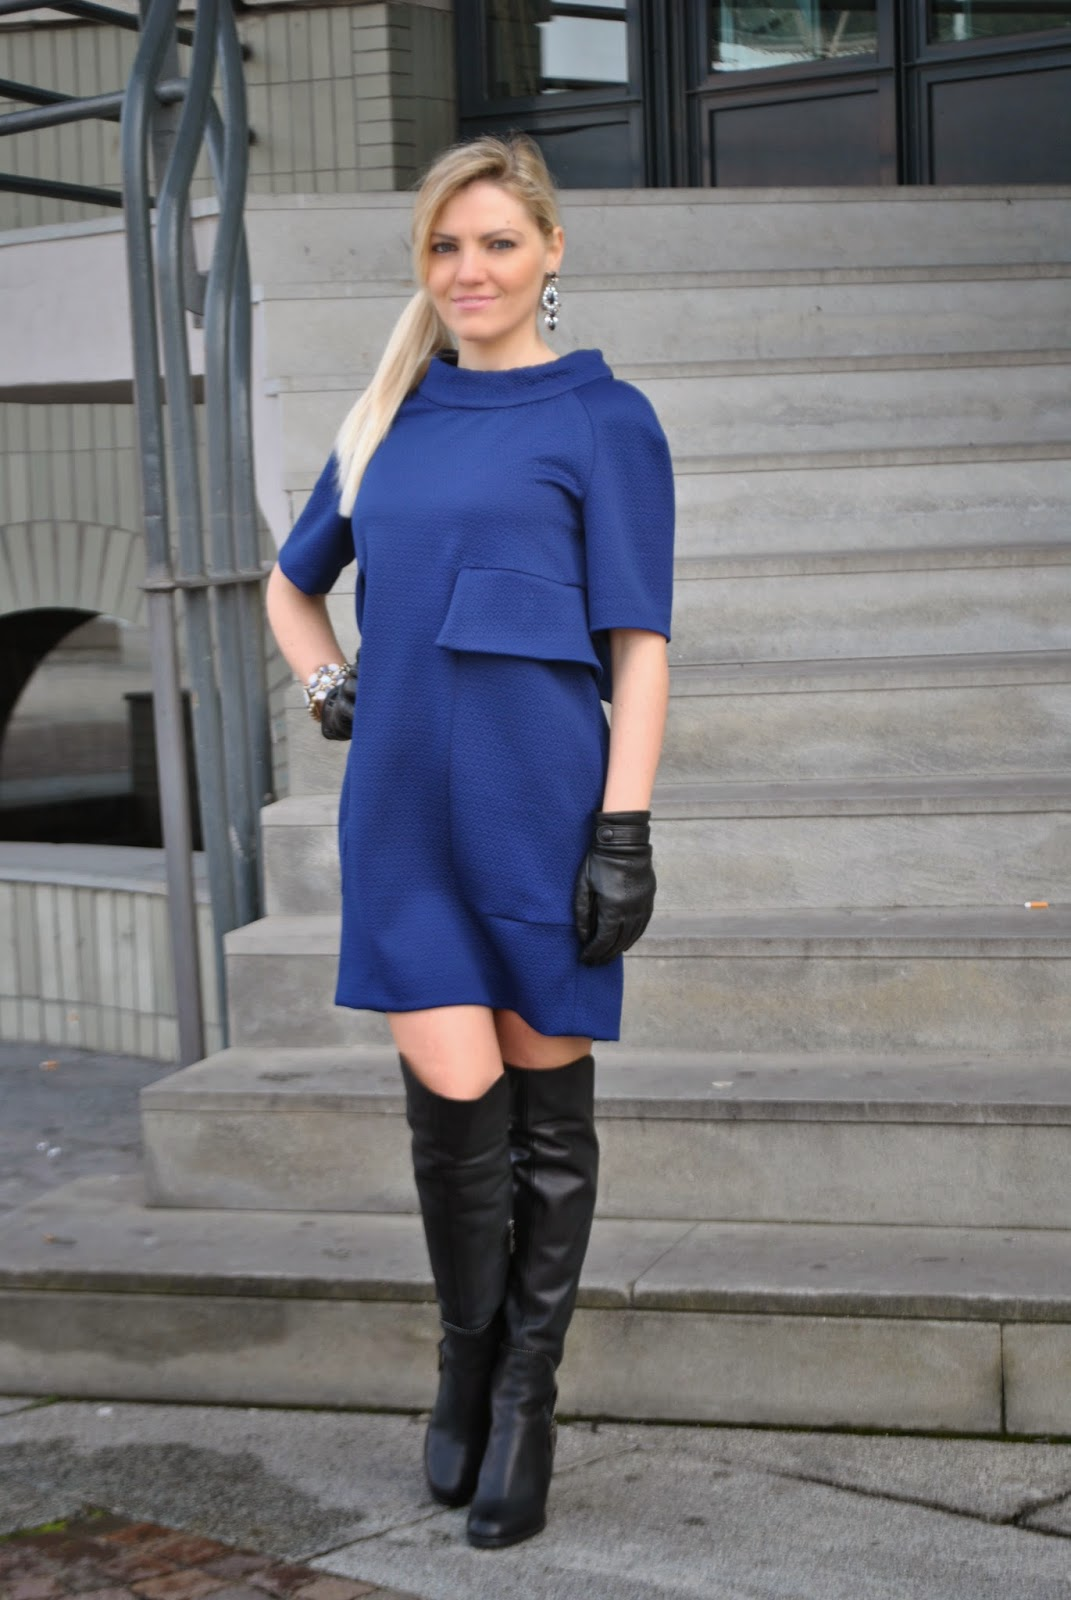 outfit cappotto a uovo outfit abito blu outfit blu come abbinare il blu outfit stivali al ginocchio outfit guanti abbinamenti cappotto a uovo abbinamenti abito blu linea anni sessanta mariafelicia magno fashion blog italiani fashion blogger italiane stivali al ginocchio danilo di lea bracciale majique  street style look book how to wear blue egg shape coat outfit blue dress '60 outfit outfit invernali outfit febbraio 2015 outfit invernali eleganti winter outfits colorblock by felym